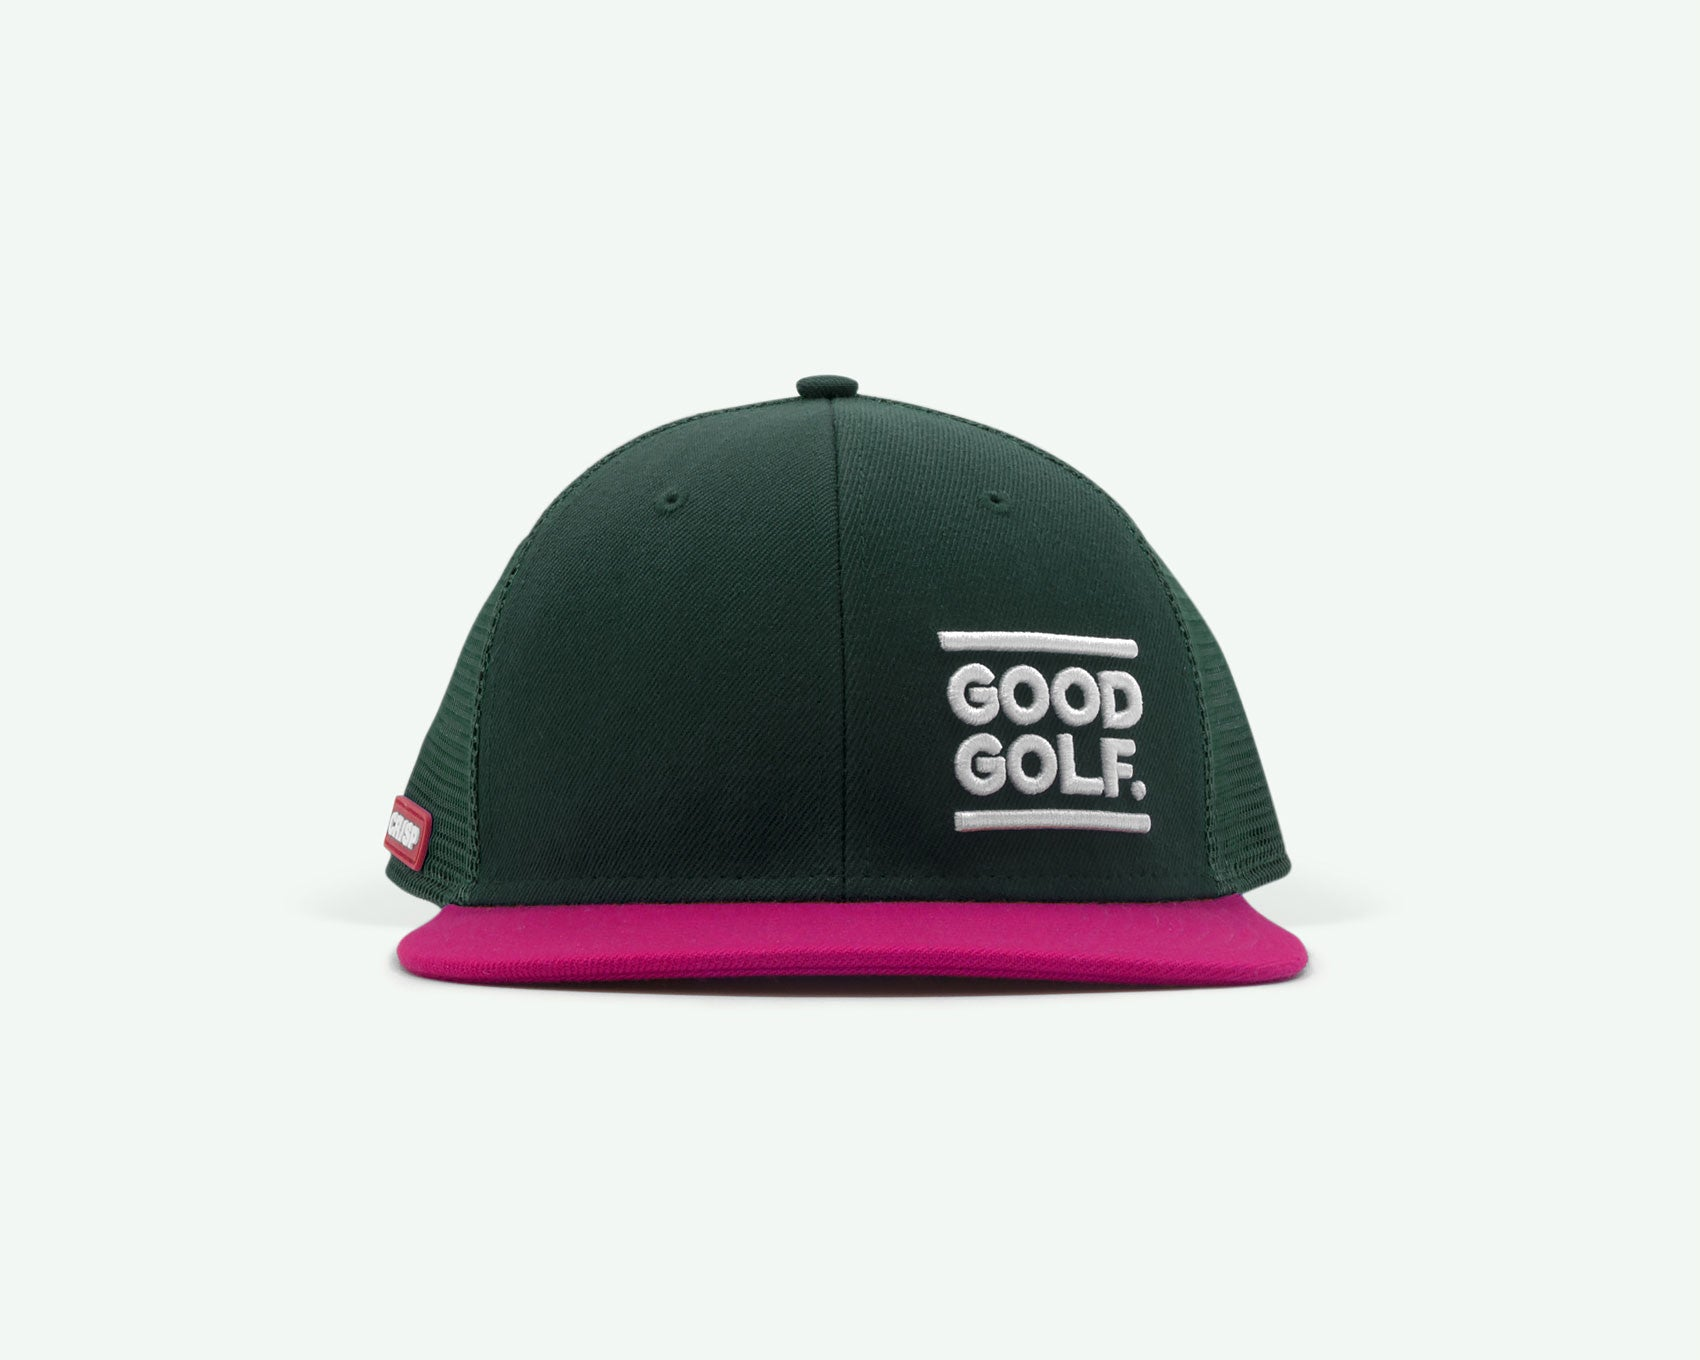 104 series green/pink structured two-tone 6-panel golf cap with a wool brush cotton crown, trucker mesh side/back panels and plastic closure